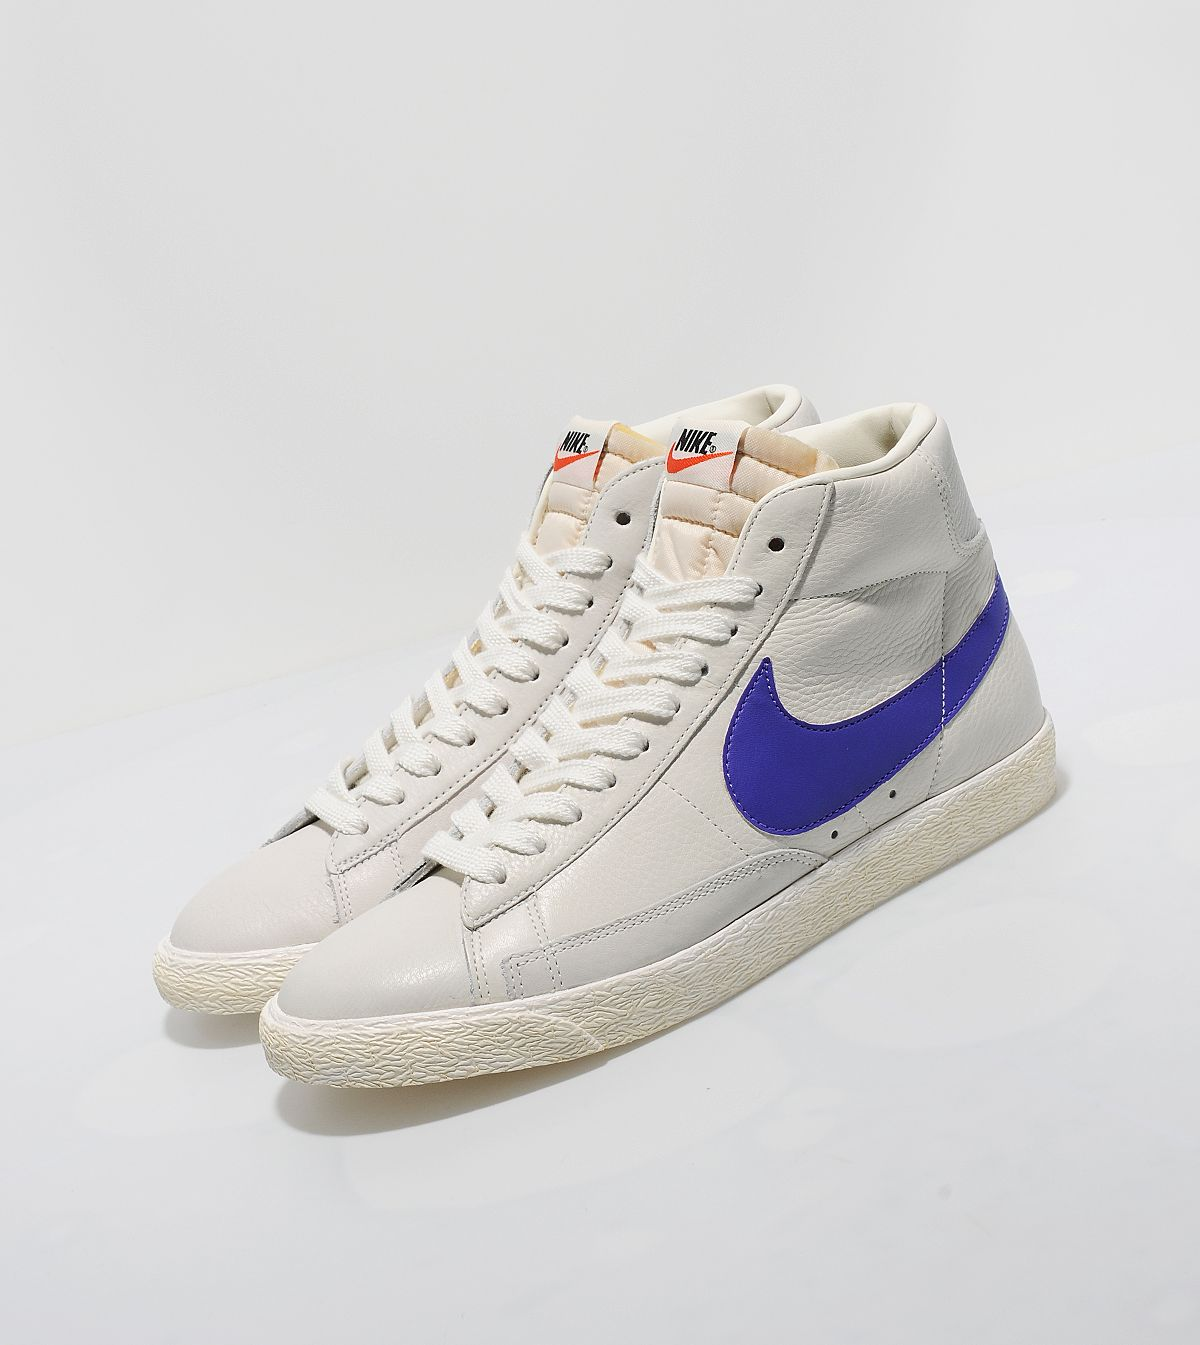 best service 0f305 9c8e9 Nike Blazer High Vintage - Sail/Purple